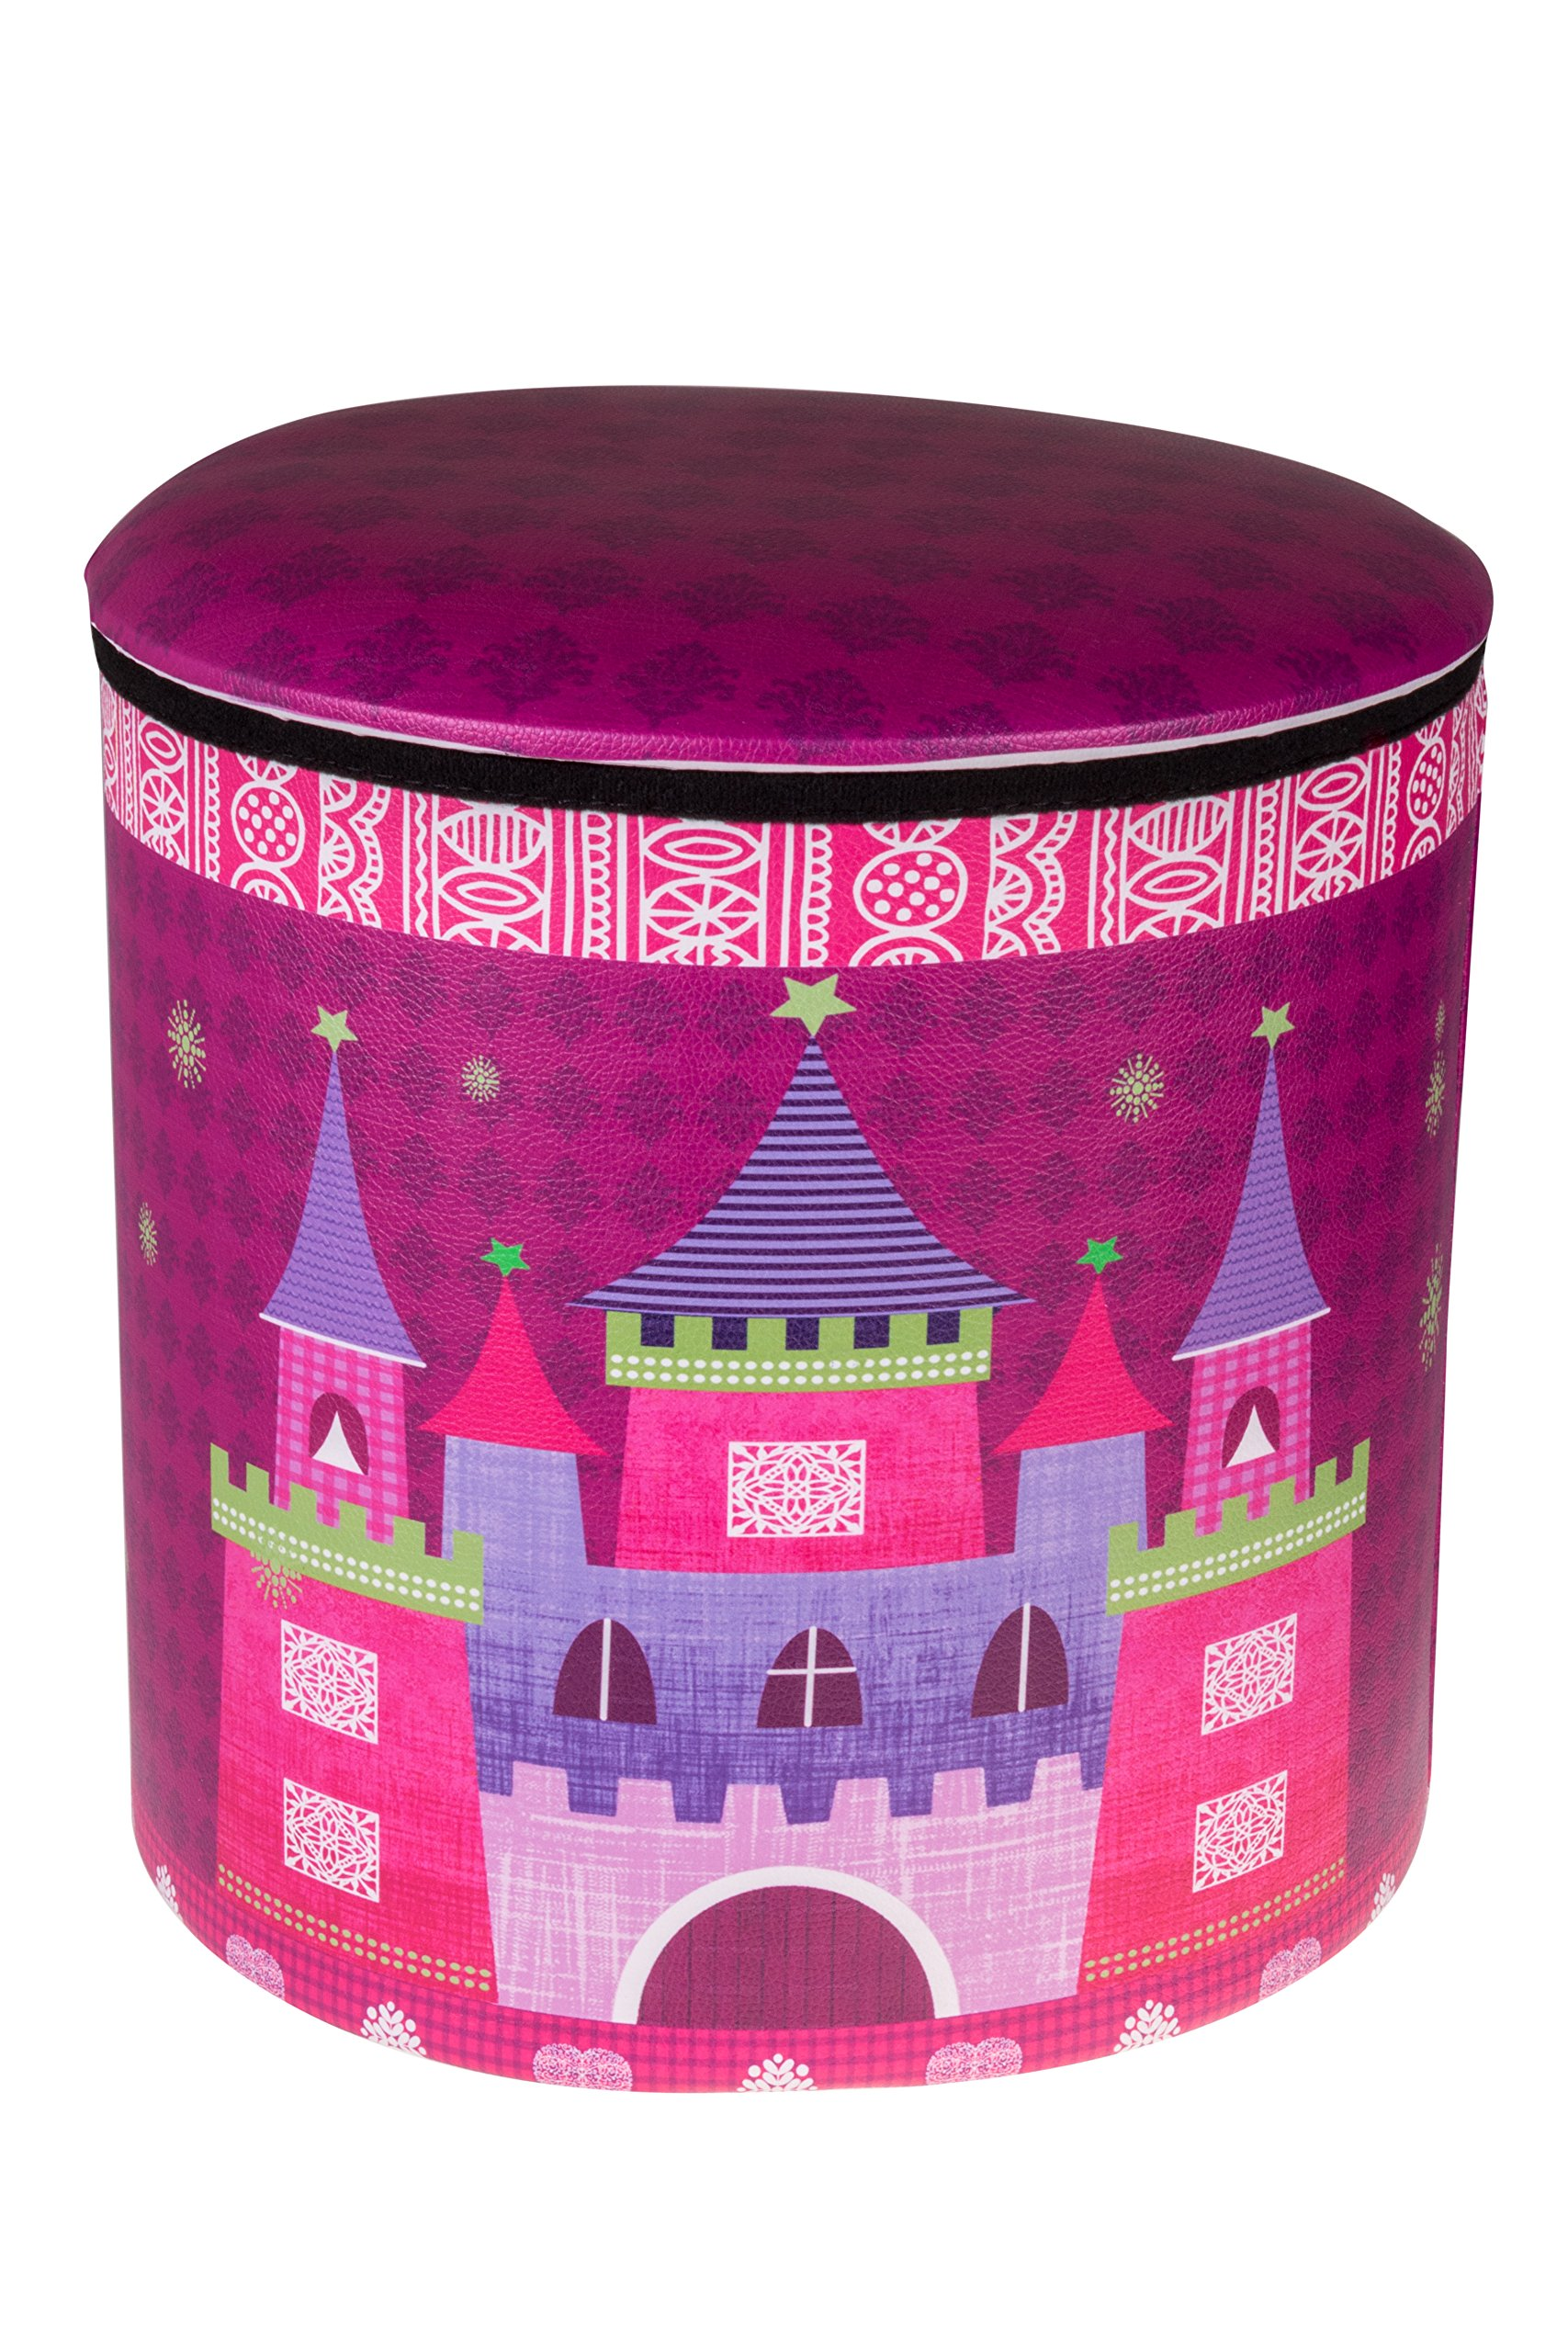 Cute Pink Princess Castle & Carriage Collapsible Storage Organizer by Clever Creations | Folding Storage Ottoman for Bedroom & Living Room | Perfect Size for Books, Clothes, Electronics, or Gadgets